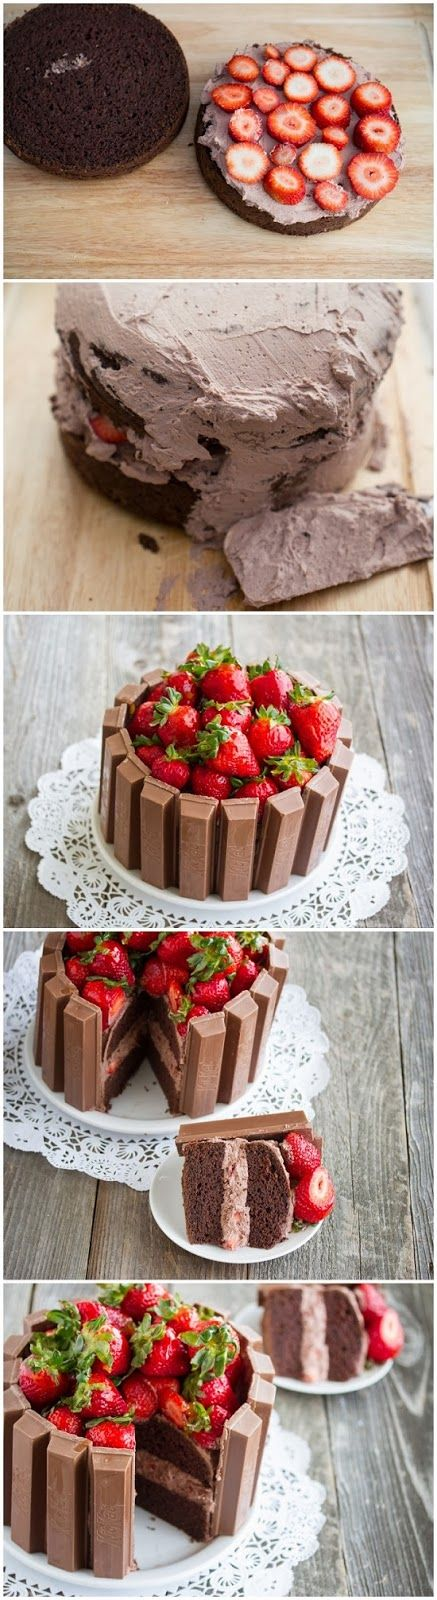 """I baked a regular chocolate cake, sliced it in half, did a chocolate whipped cream and fresh strawberries filling, then spread more whipped cream outside the cake before sticking on the kit kats and topping with piles of fresh strawberries."""